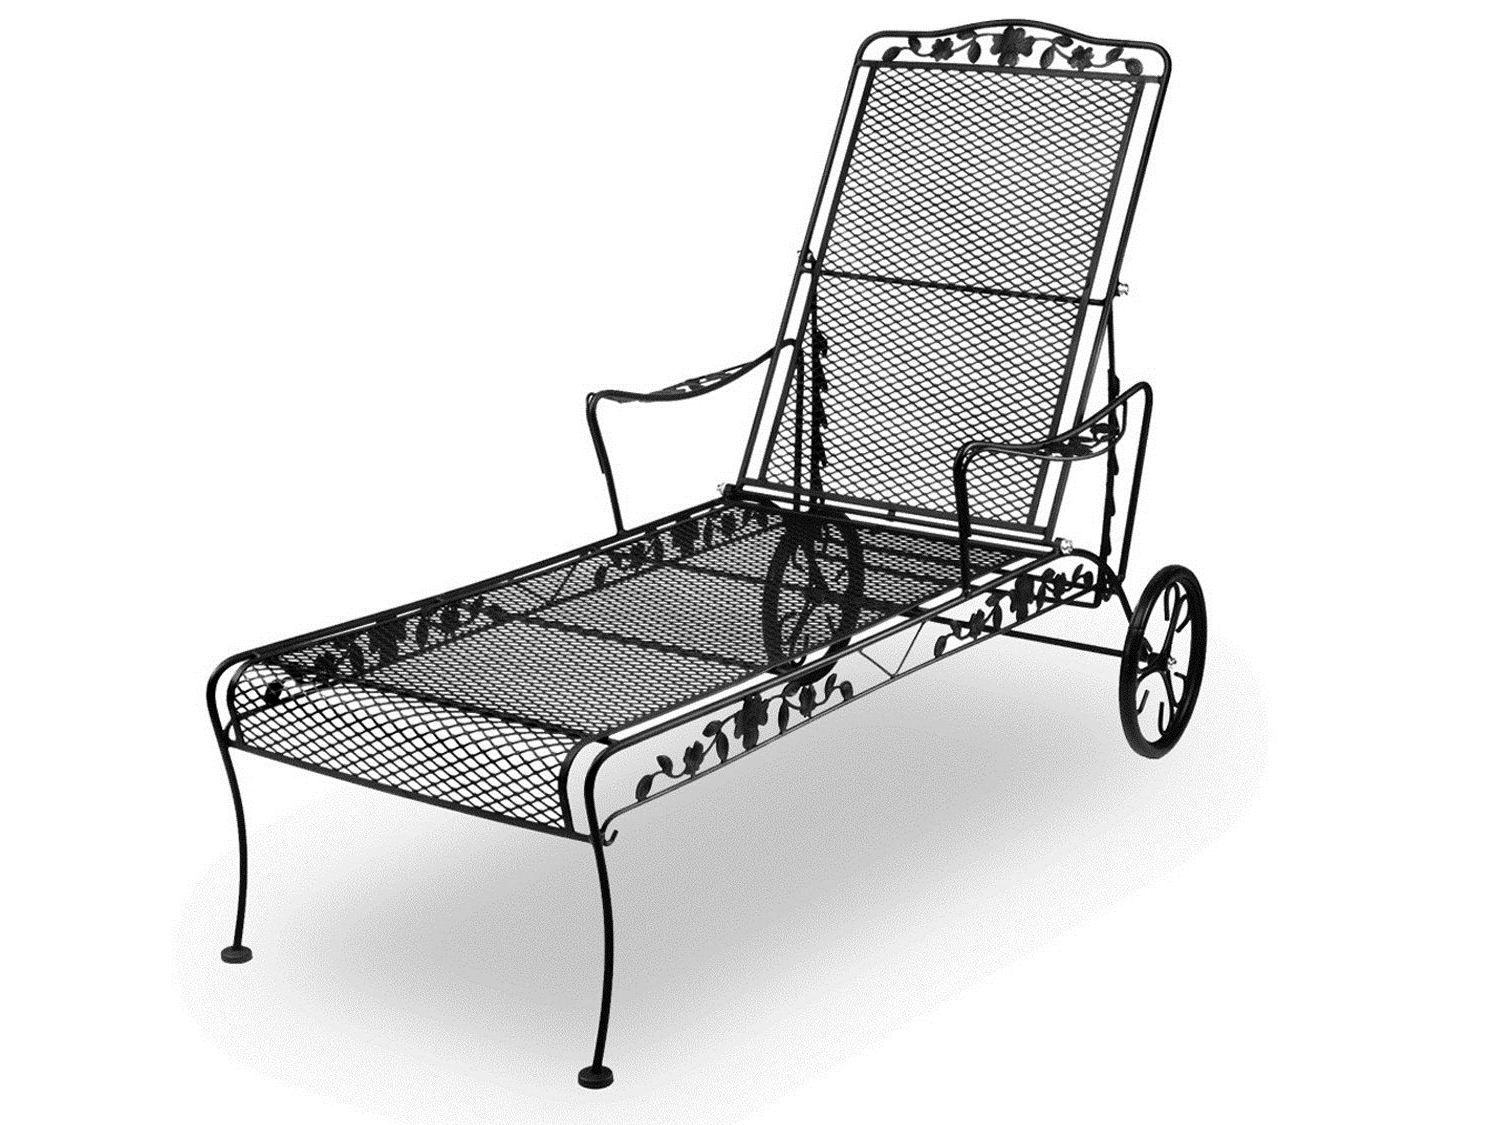 Wrought Iron Chaise Lounge Chairs • Lounge Chairs Ideas Pertaining To Preferred Metal Chaise Lounge (View 7 of 15)